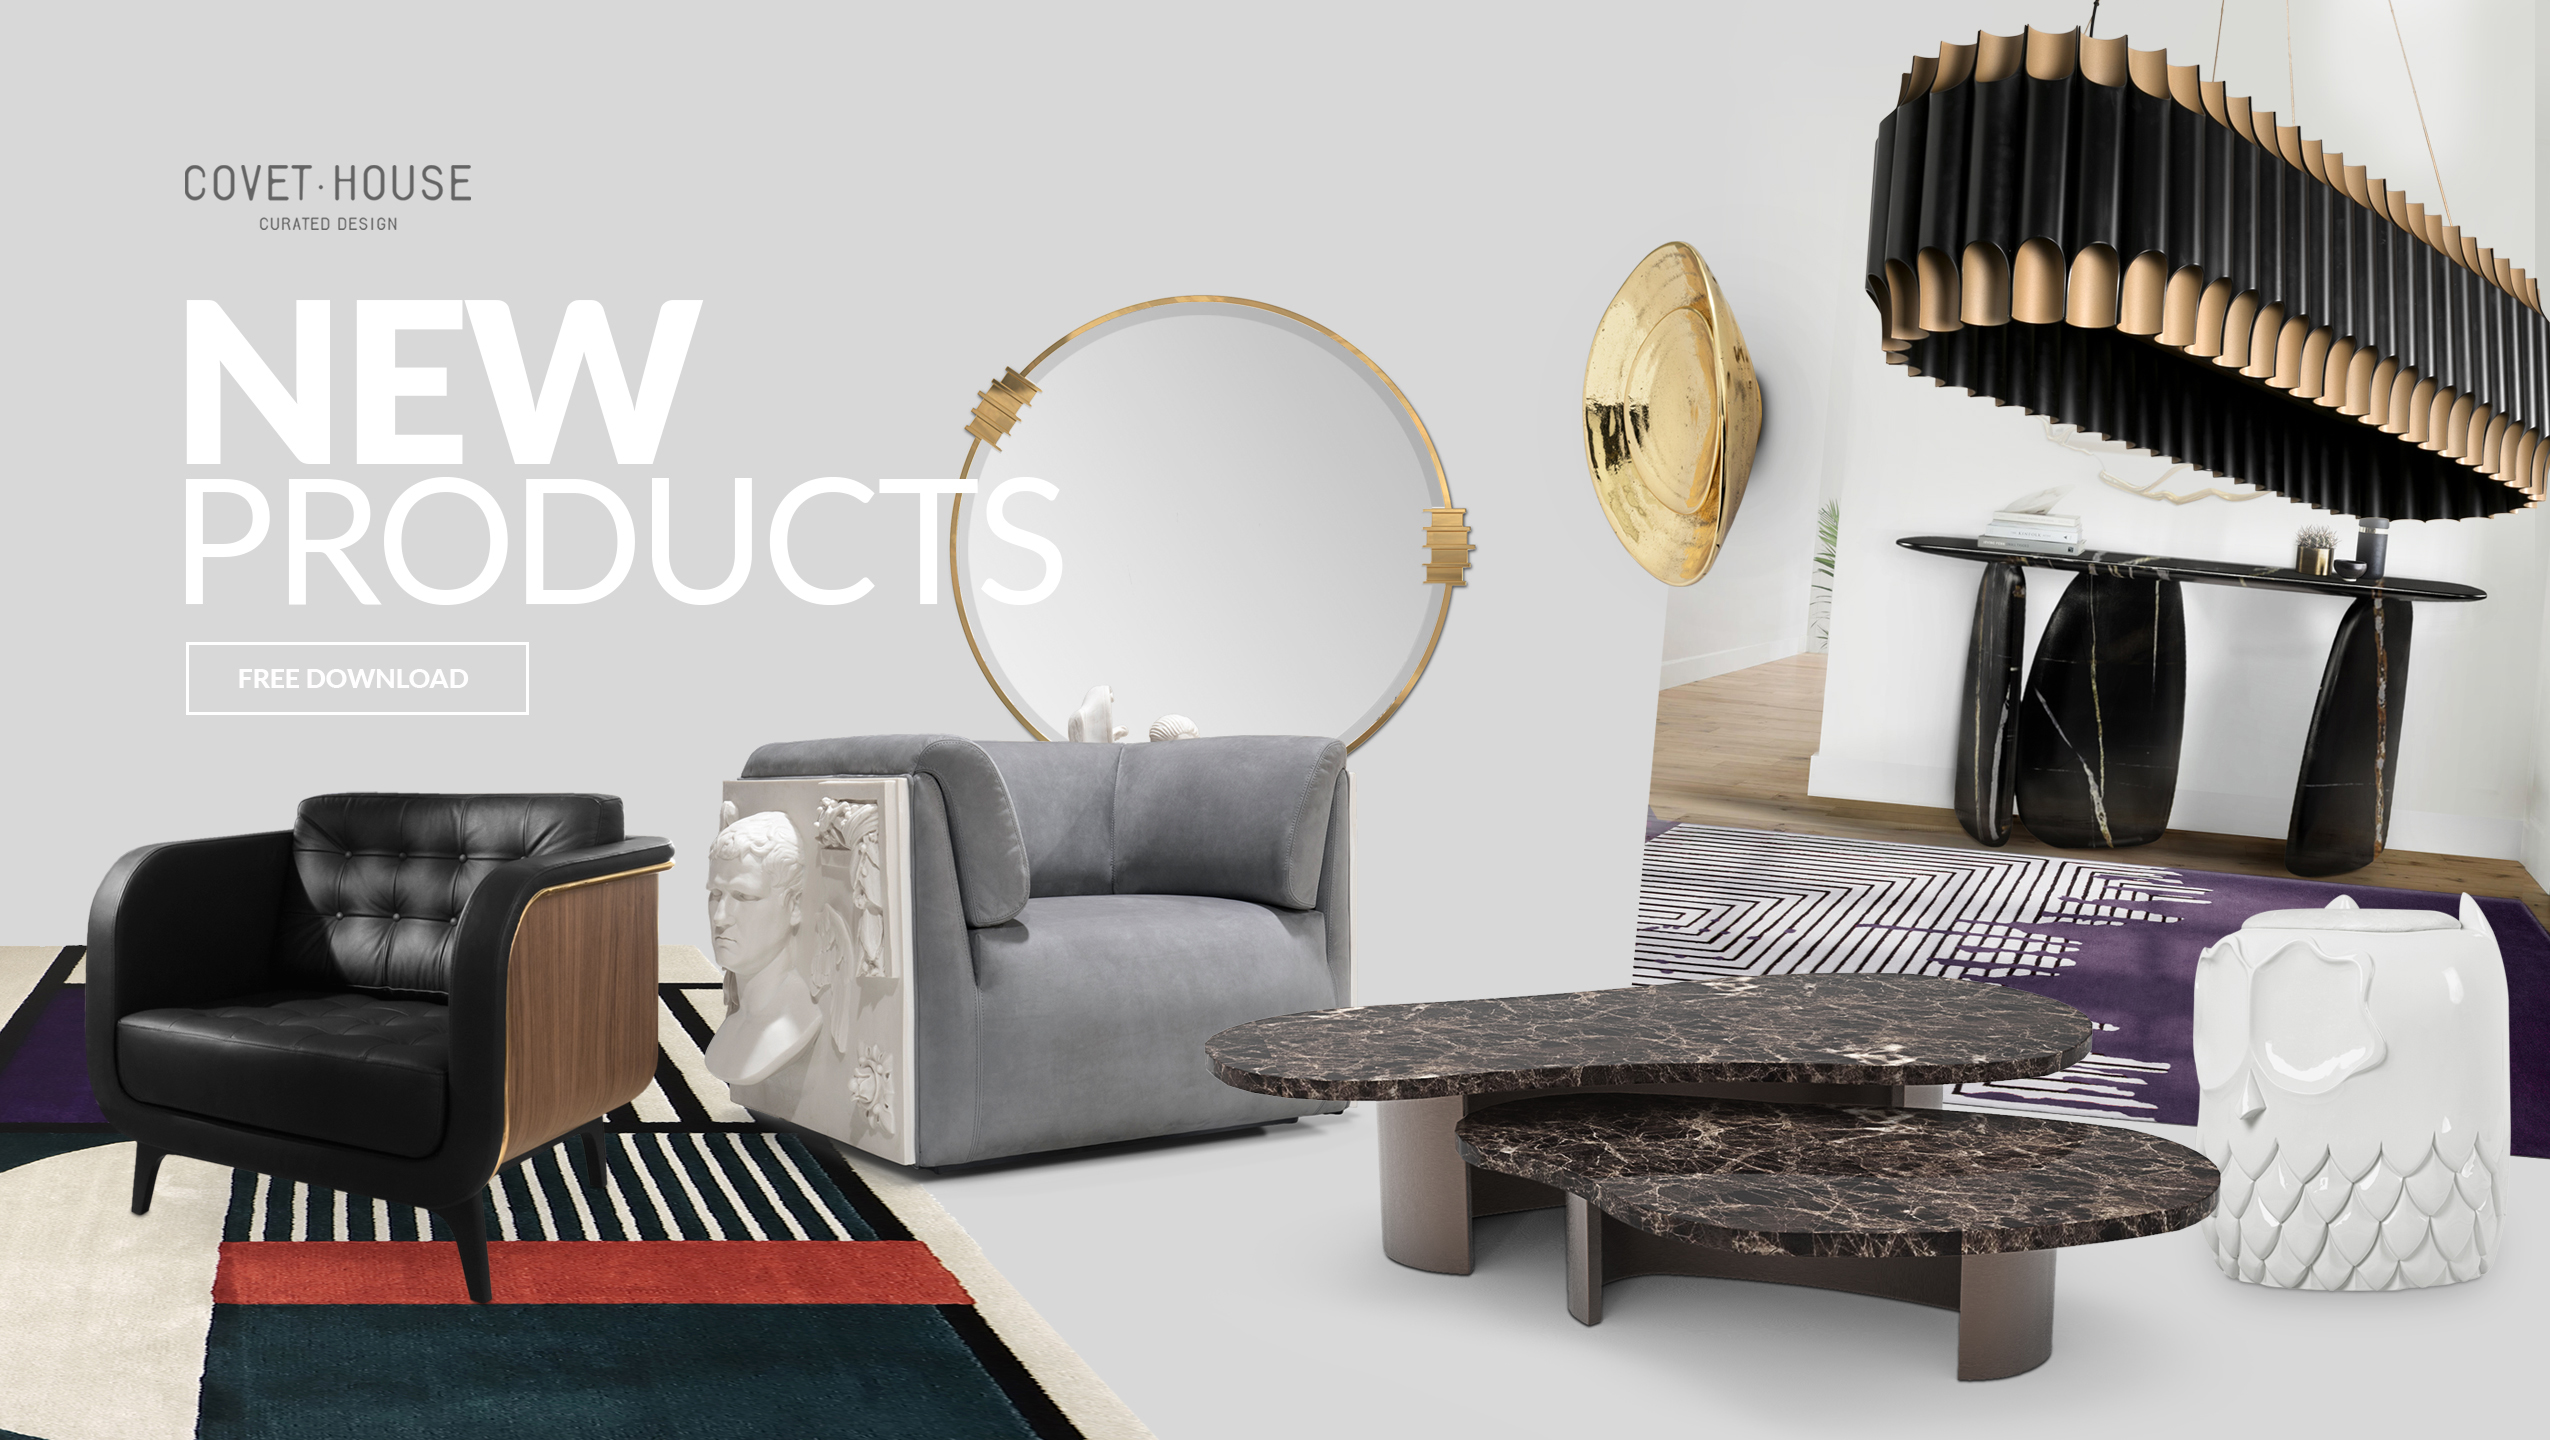 New Products 2020 maison et objet Discover An Urban Lifestyle Brand That Stunned Maison Et Objet newproducts cta1